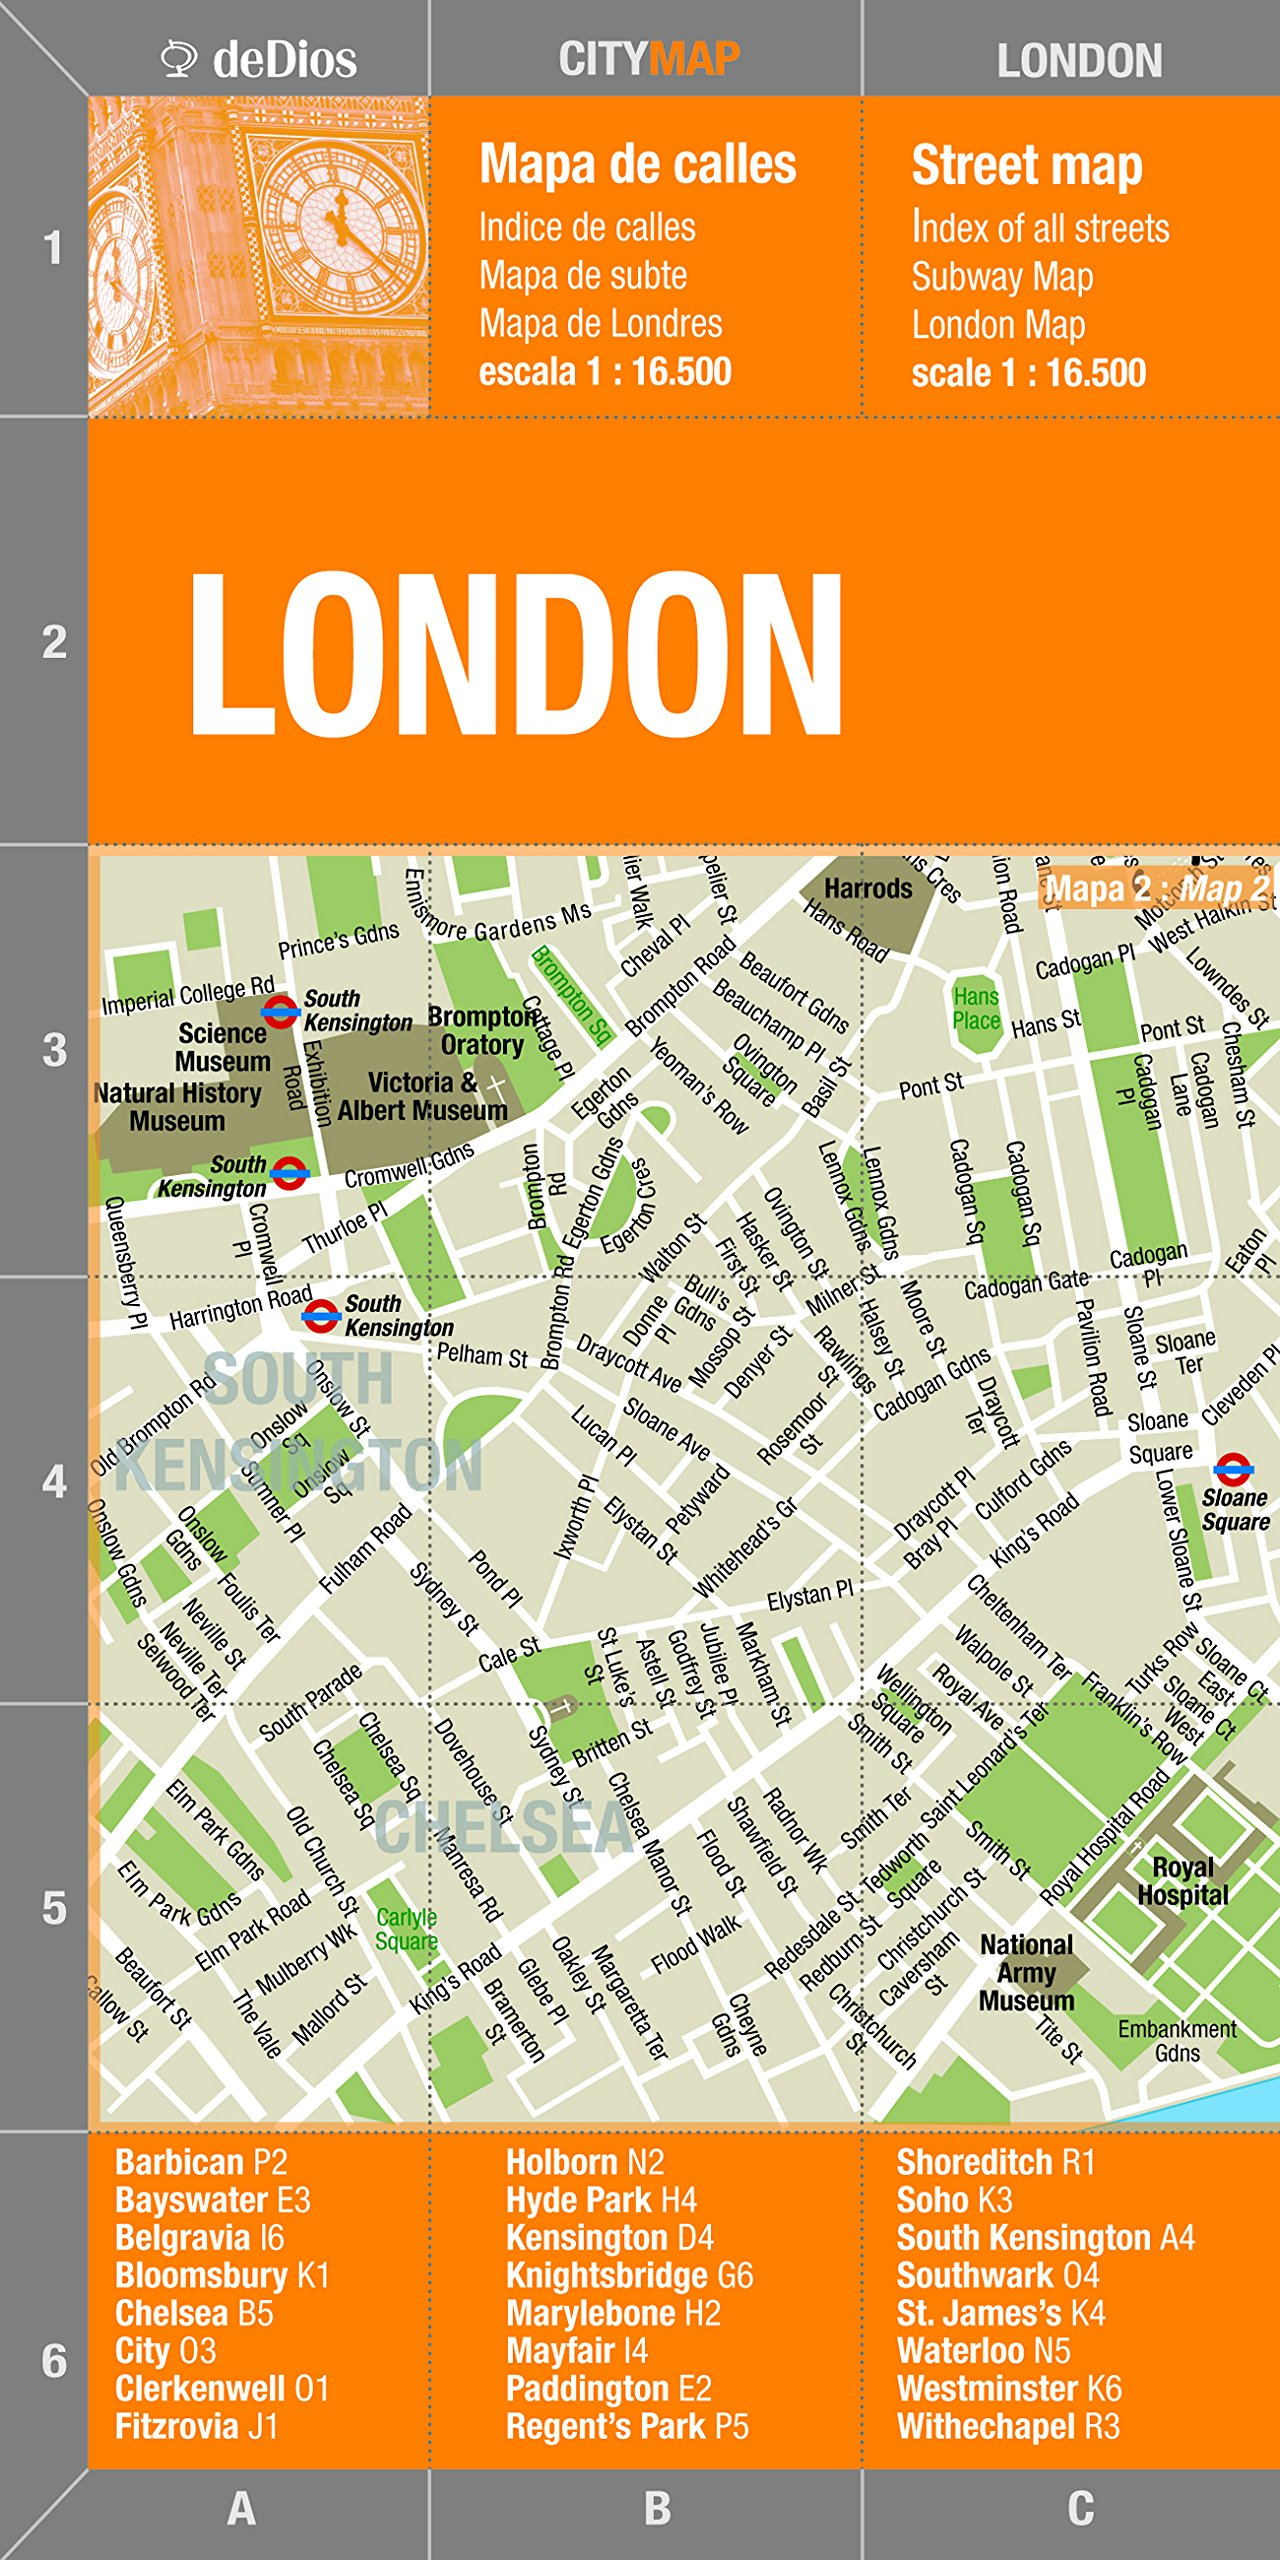 London City Center Map By Dedios City Map Spanish And English